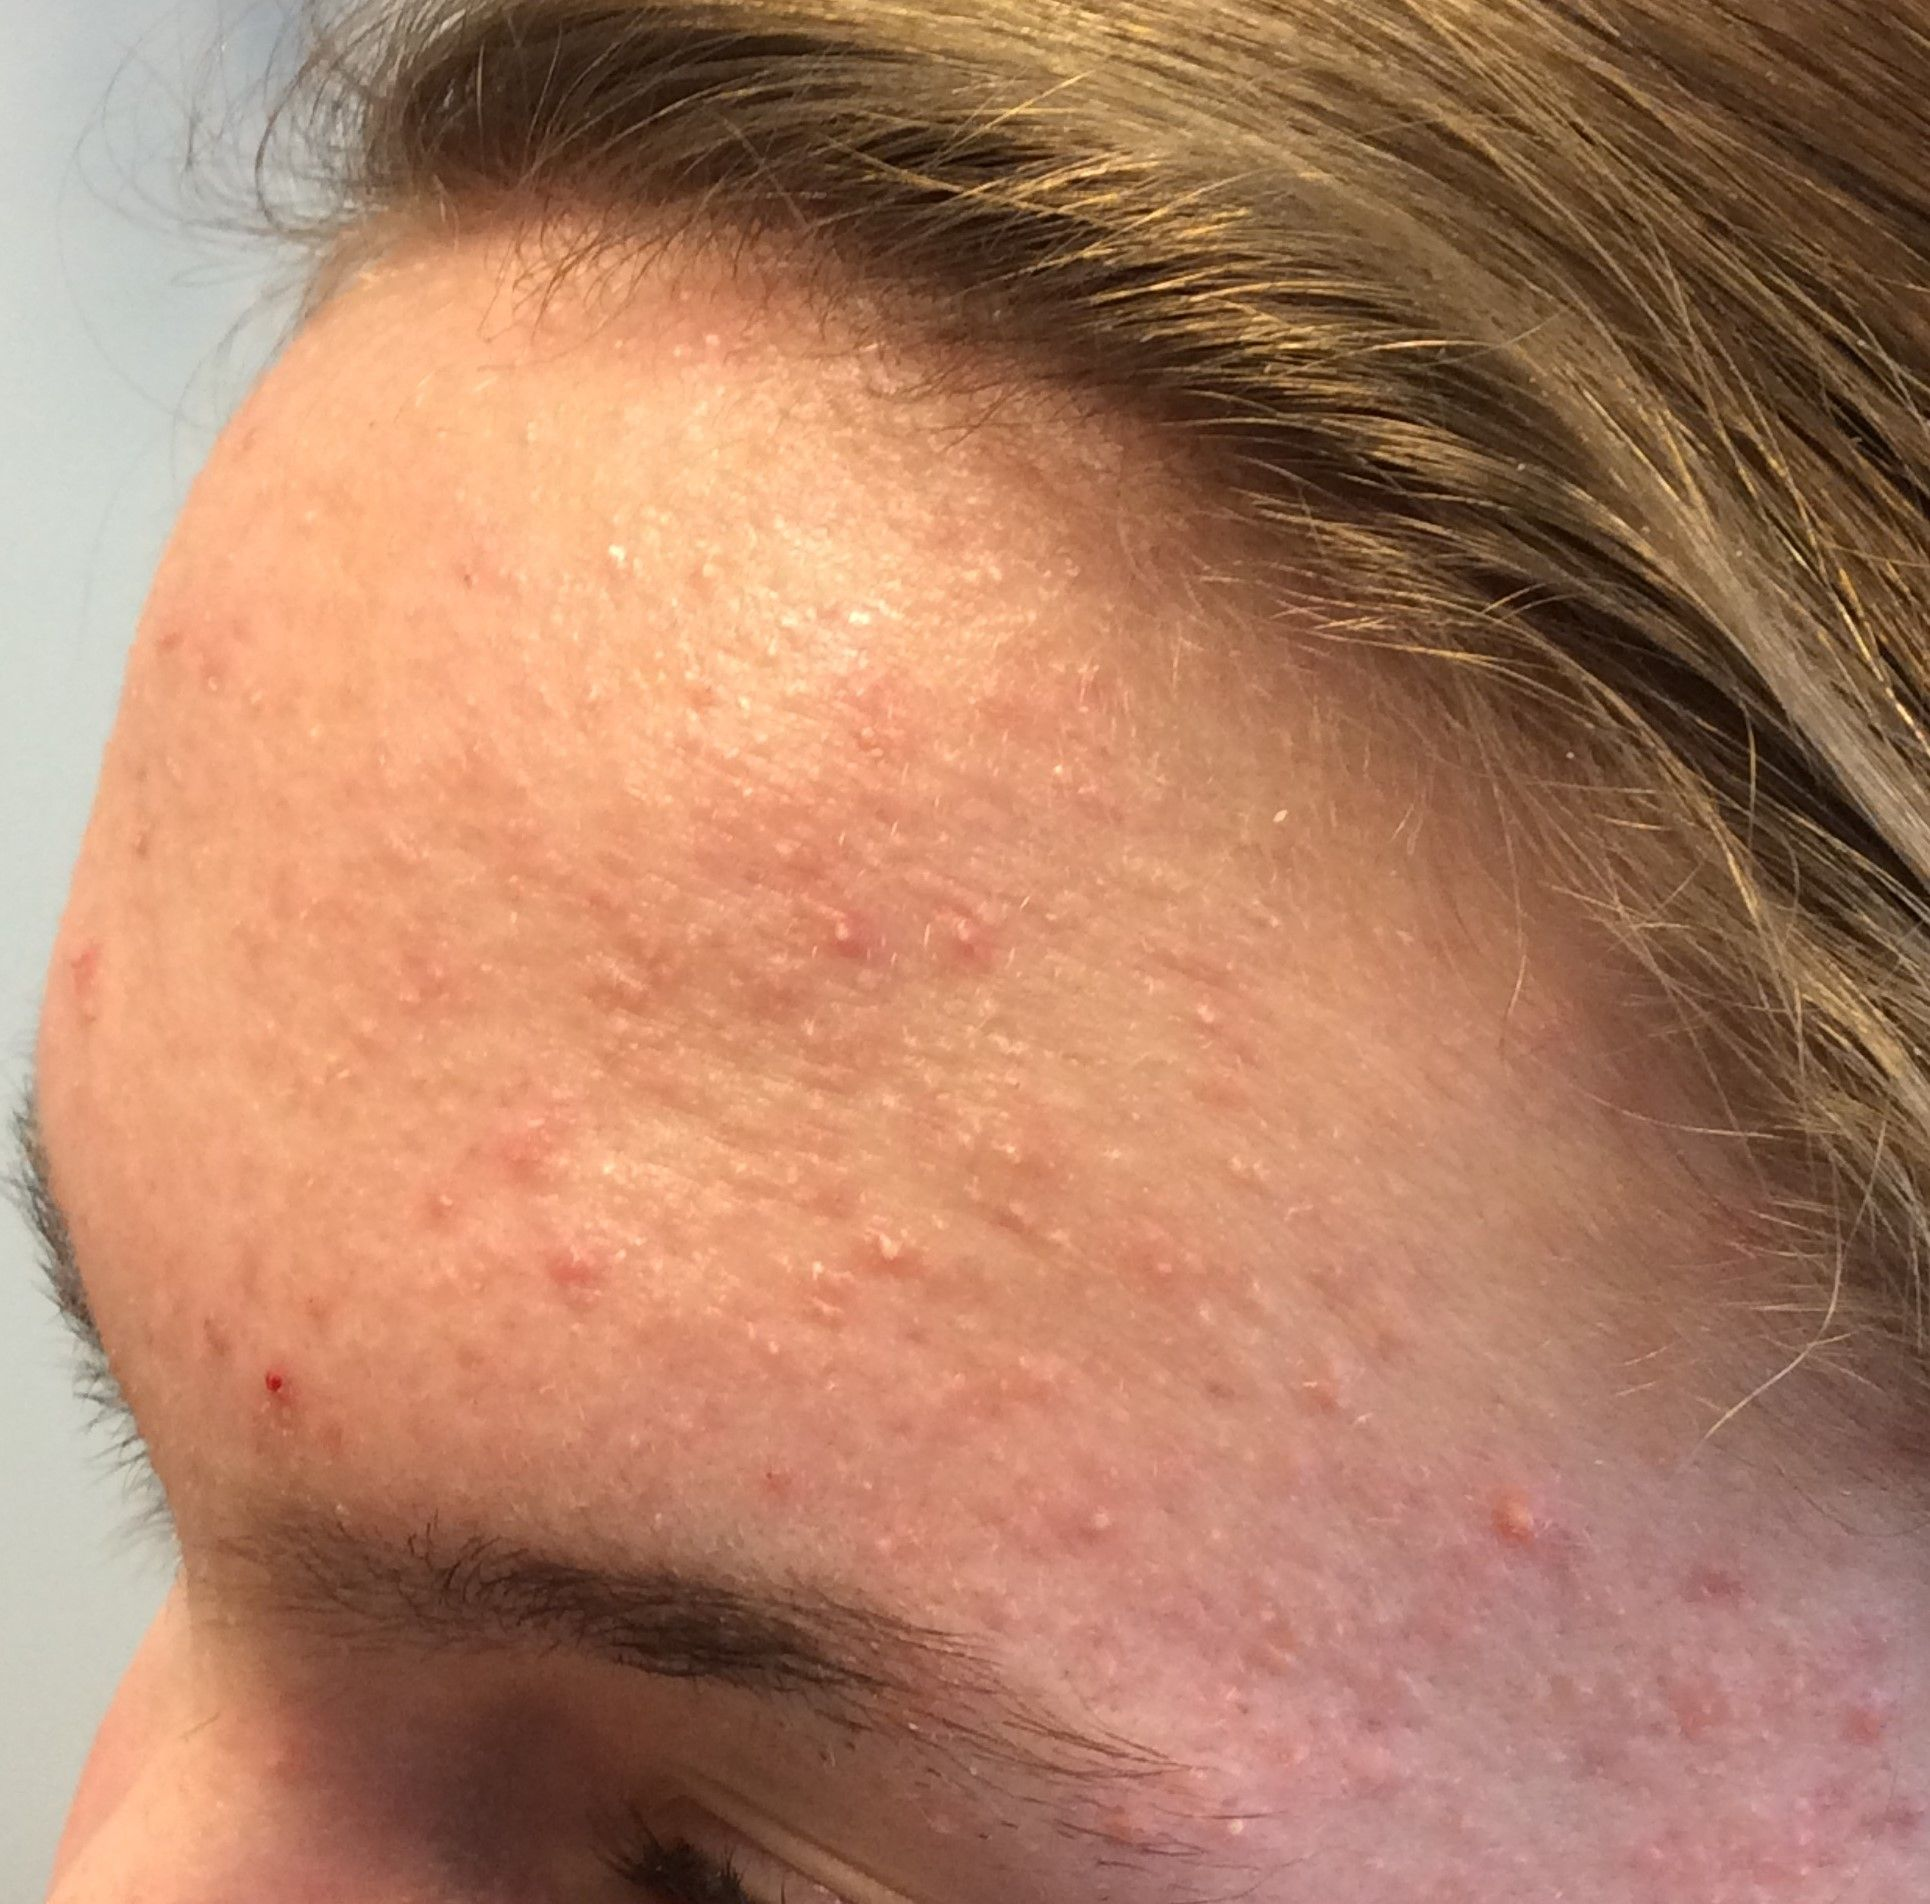 woman's forehead